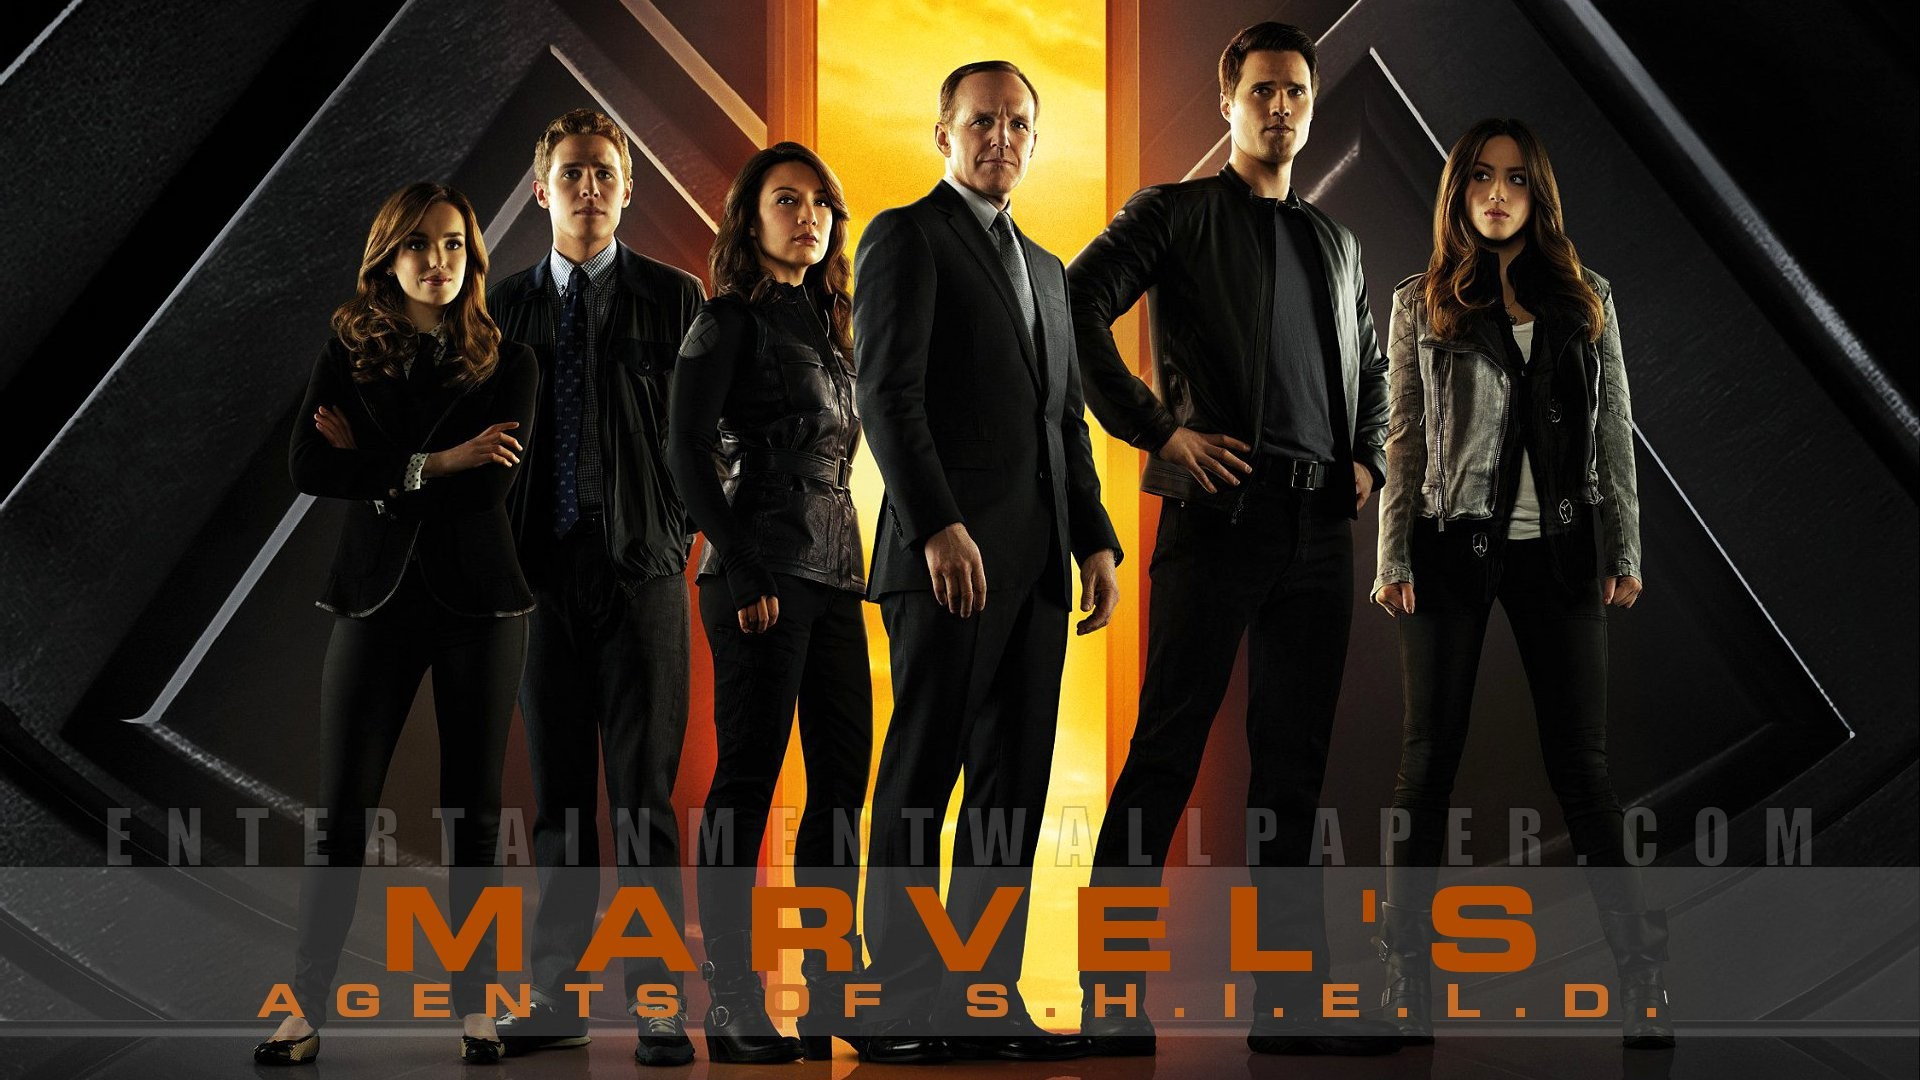 1920x1080 Marvel's Agents of S.H.I.E.L.D. Wallpaper - Original size, ...